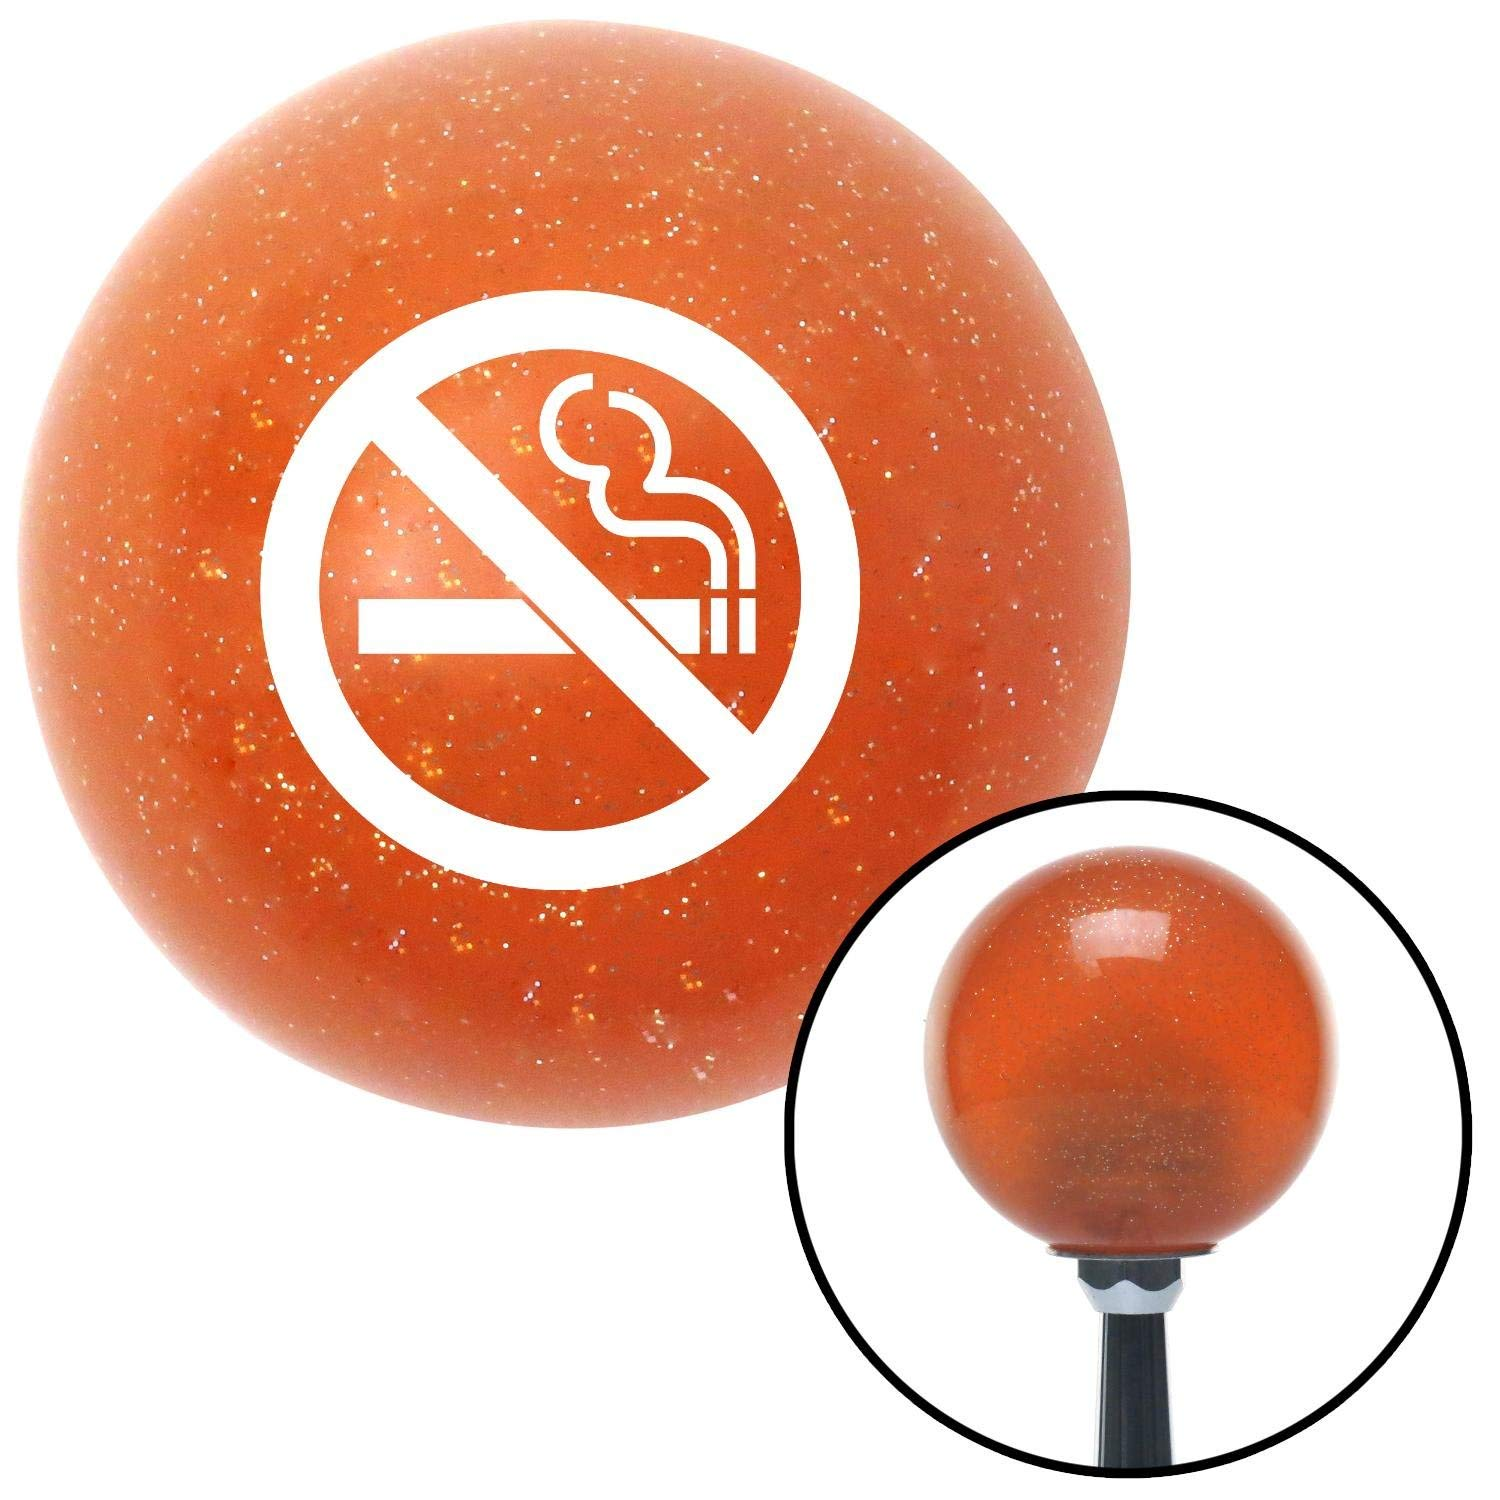 American Shifter 42781 Orange Metal Flake Shift Knob with 16mm x 1.5 Insert White No Smoking